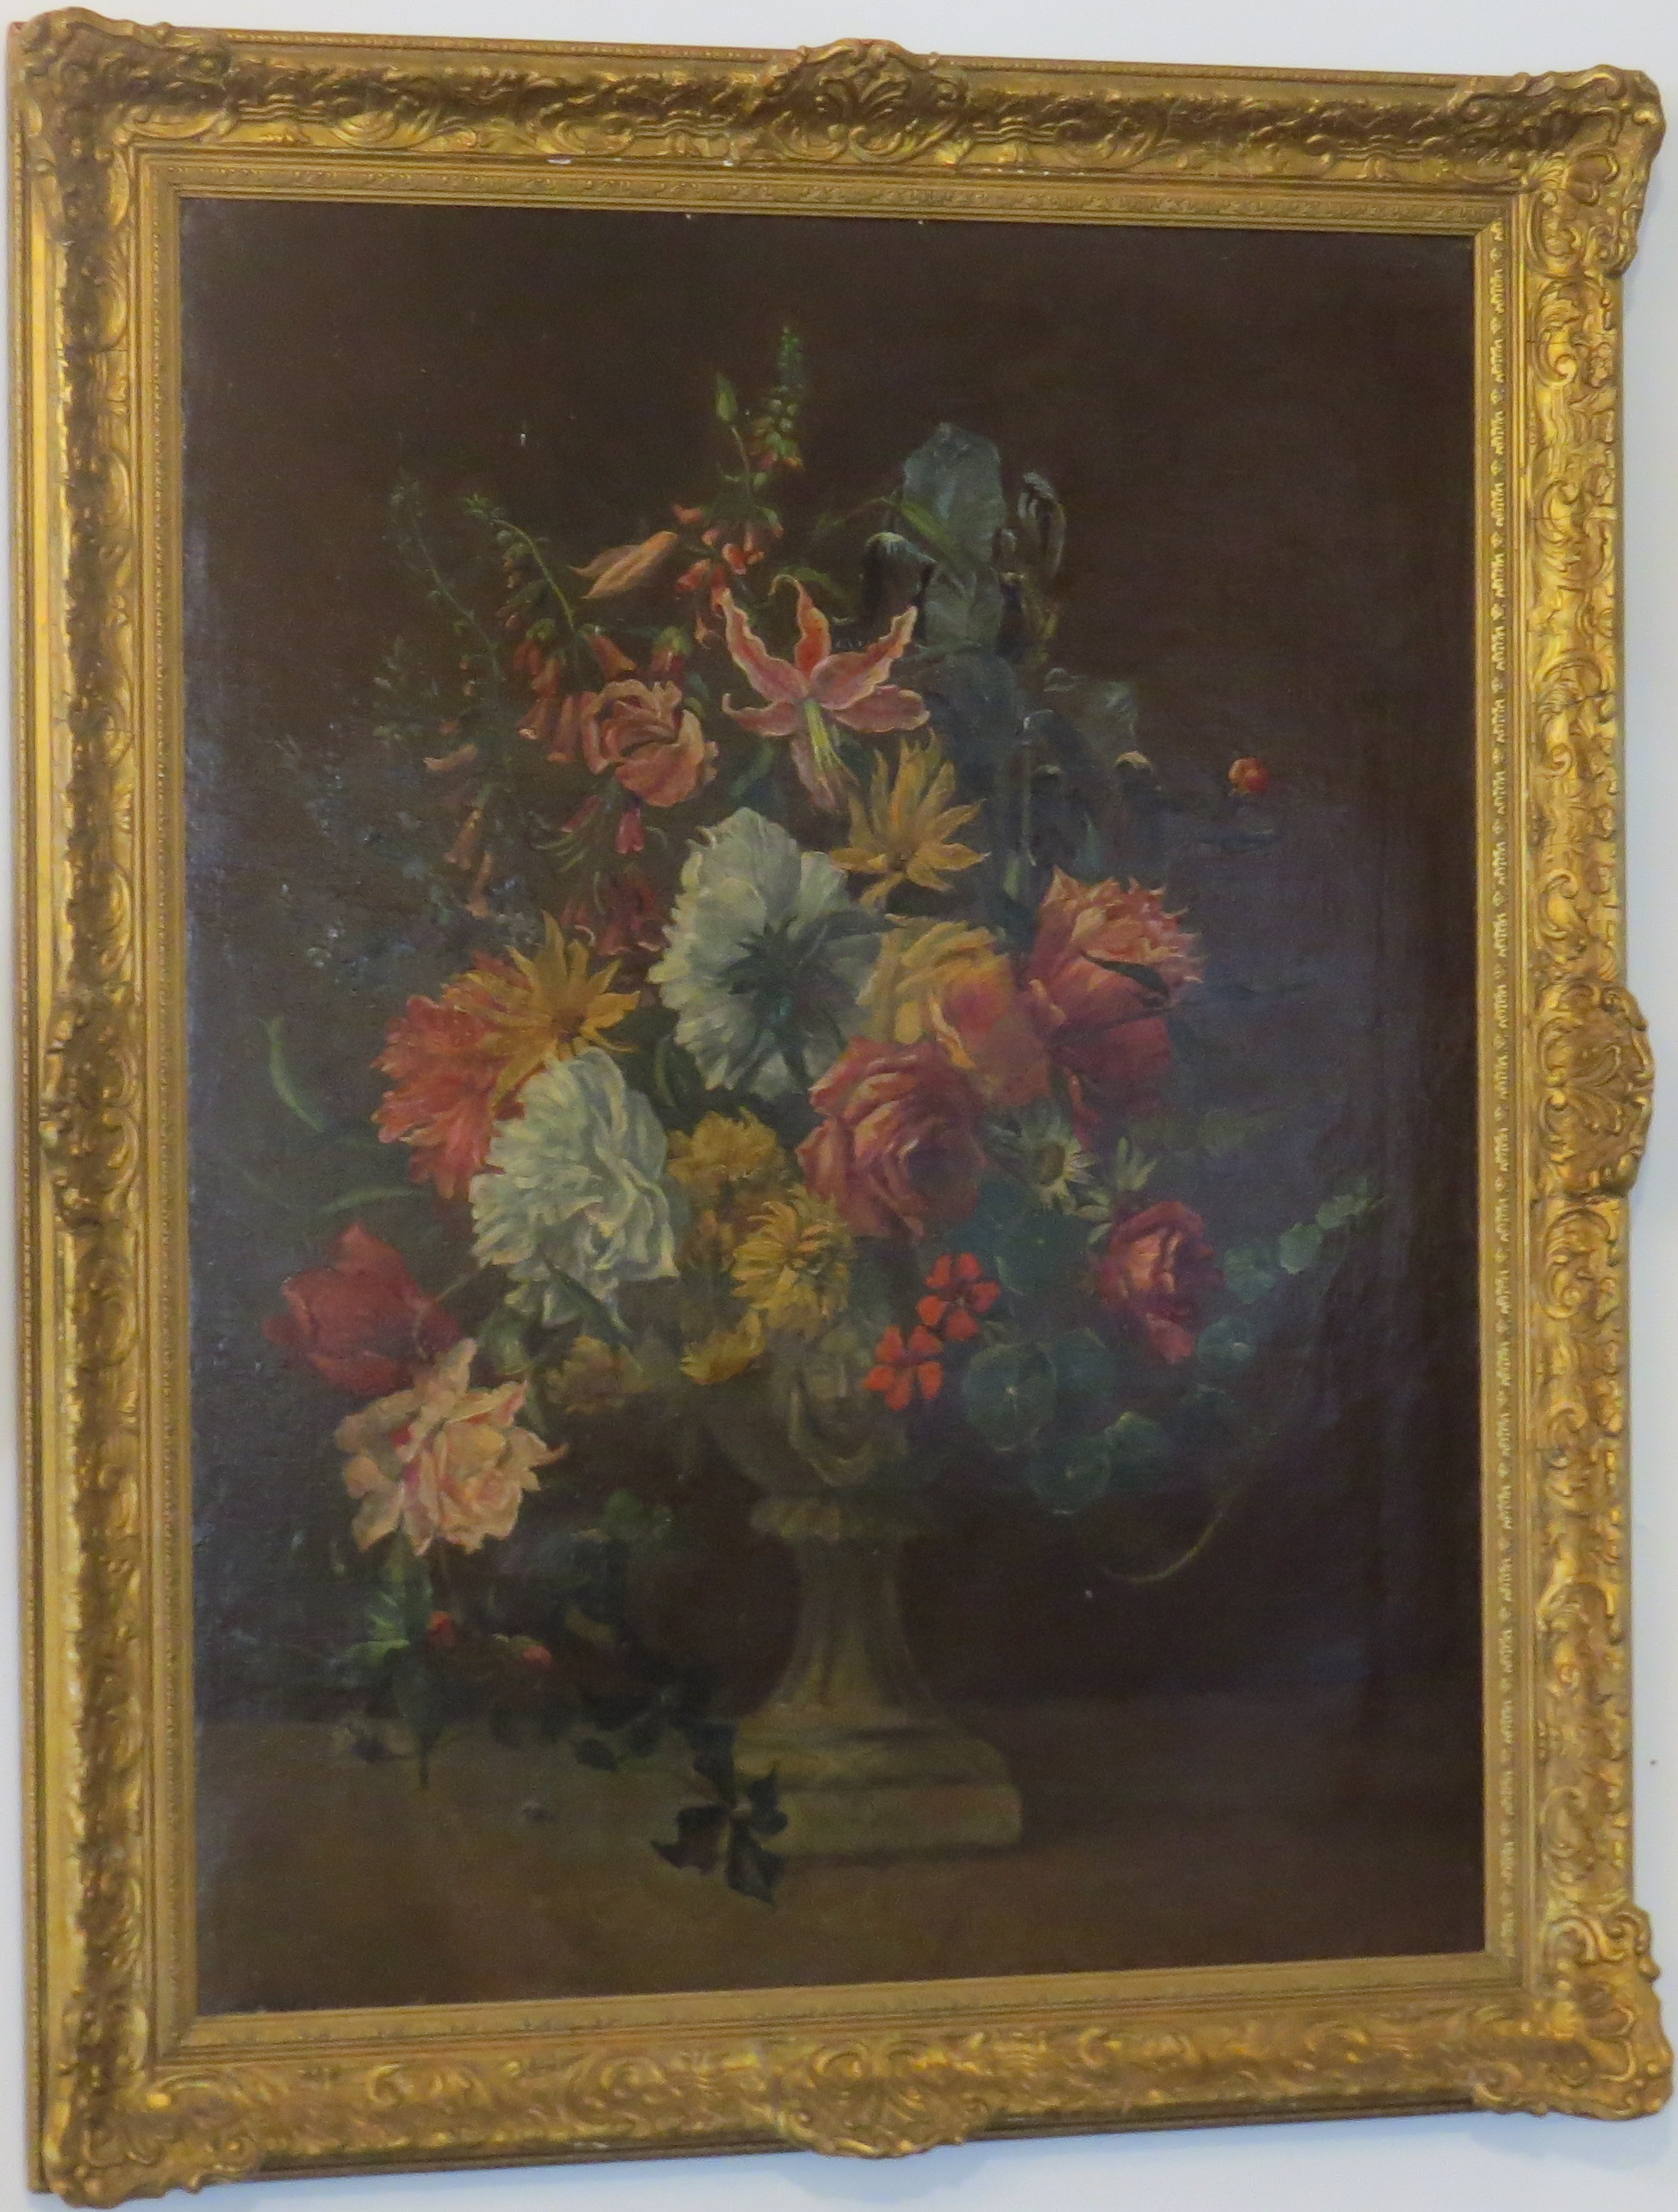 Colorful Dutch Floral Still Life, Oil on Canvas